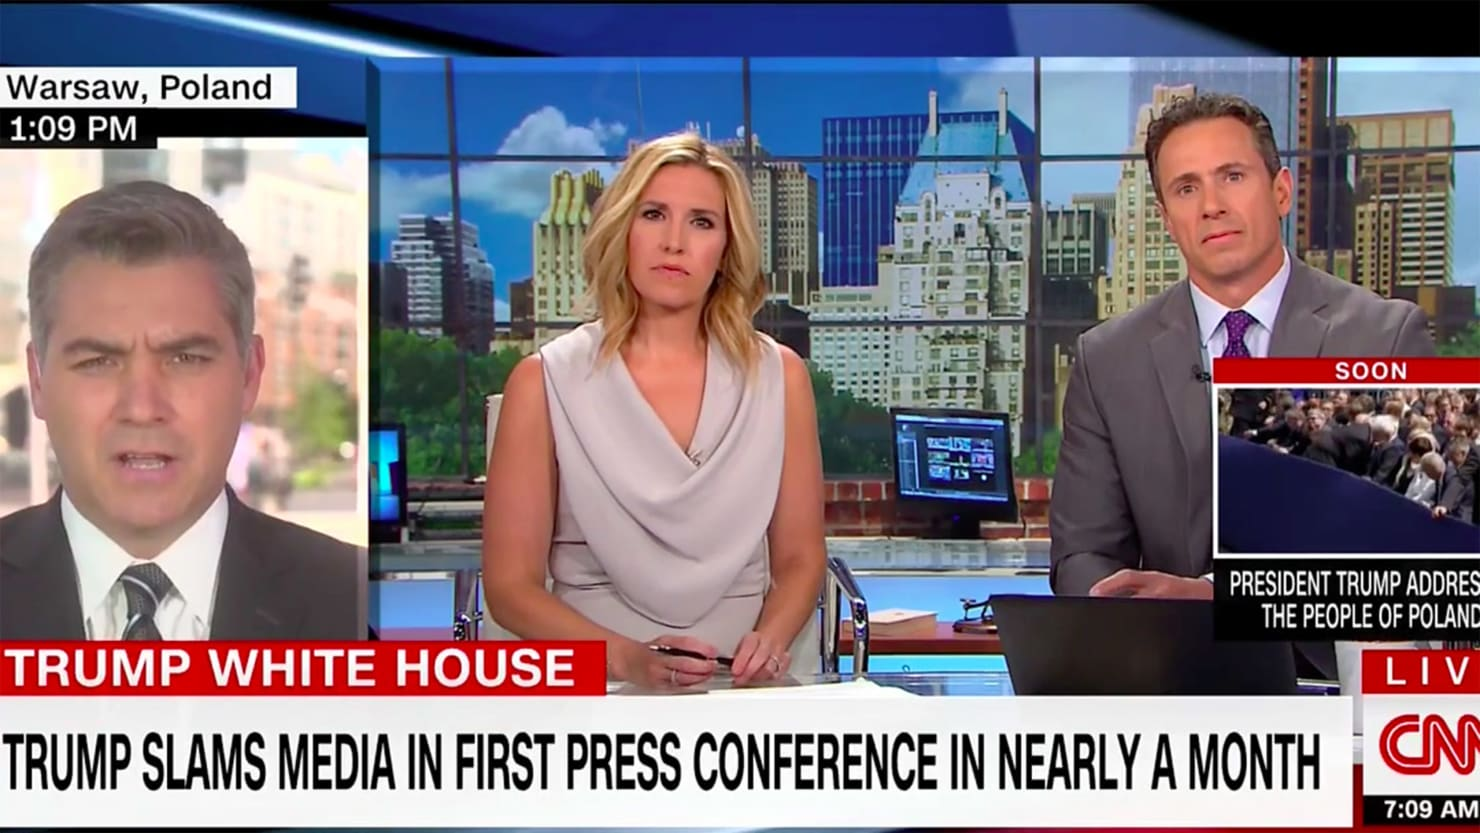 CNN Fires back at Trump 'press conference' in Poland